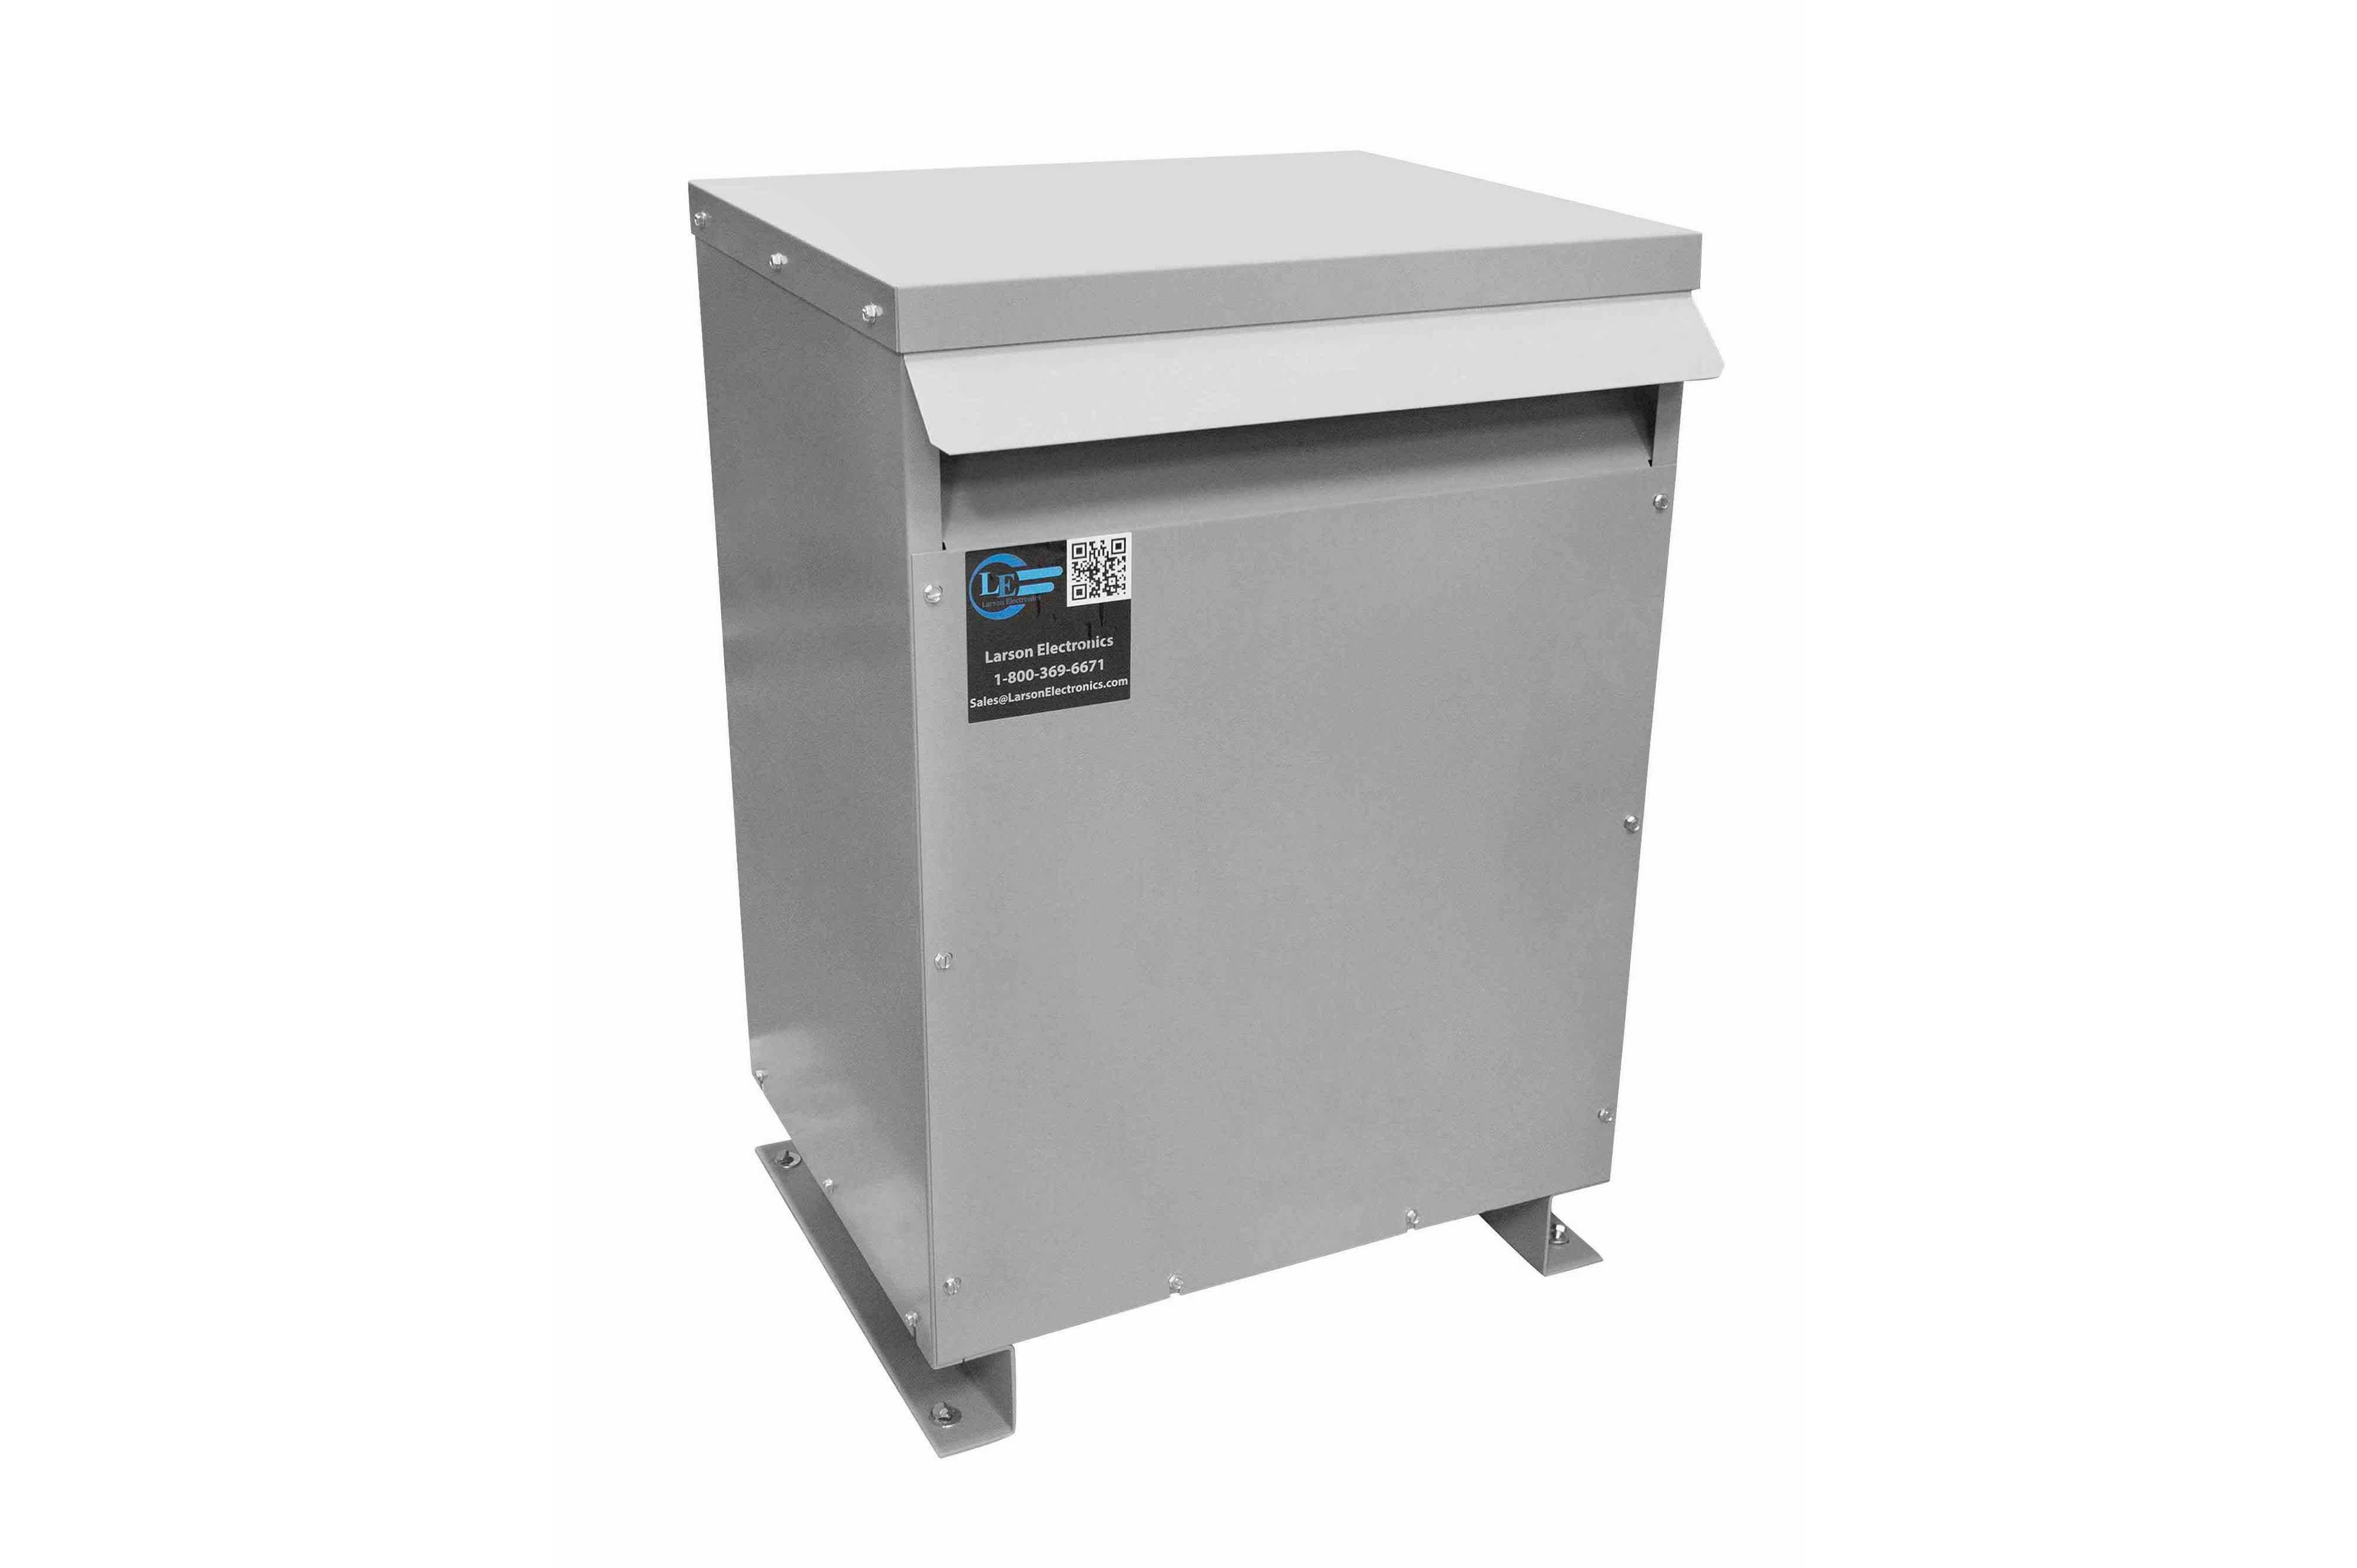 1000 kVA 3PH Isolation Transformer, 600V Delta Primary, 480V Delta Secondary, N3R, Ventilated, 60 Hz